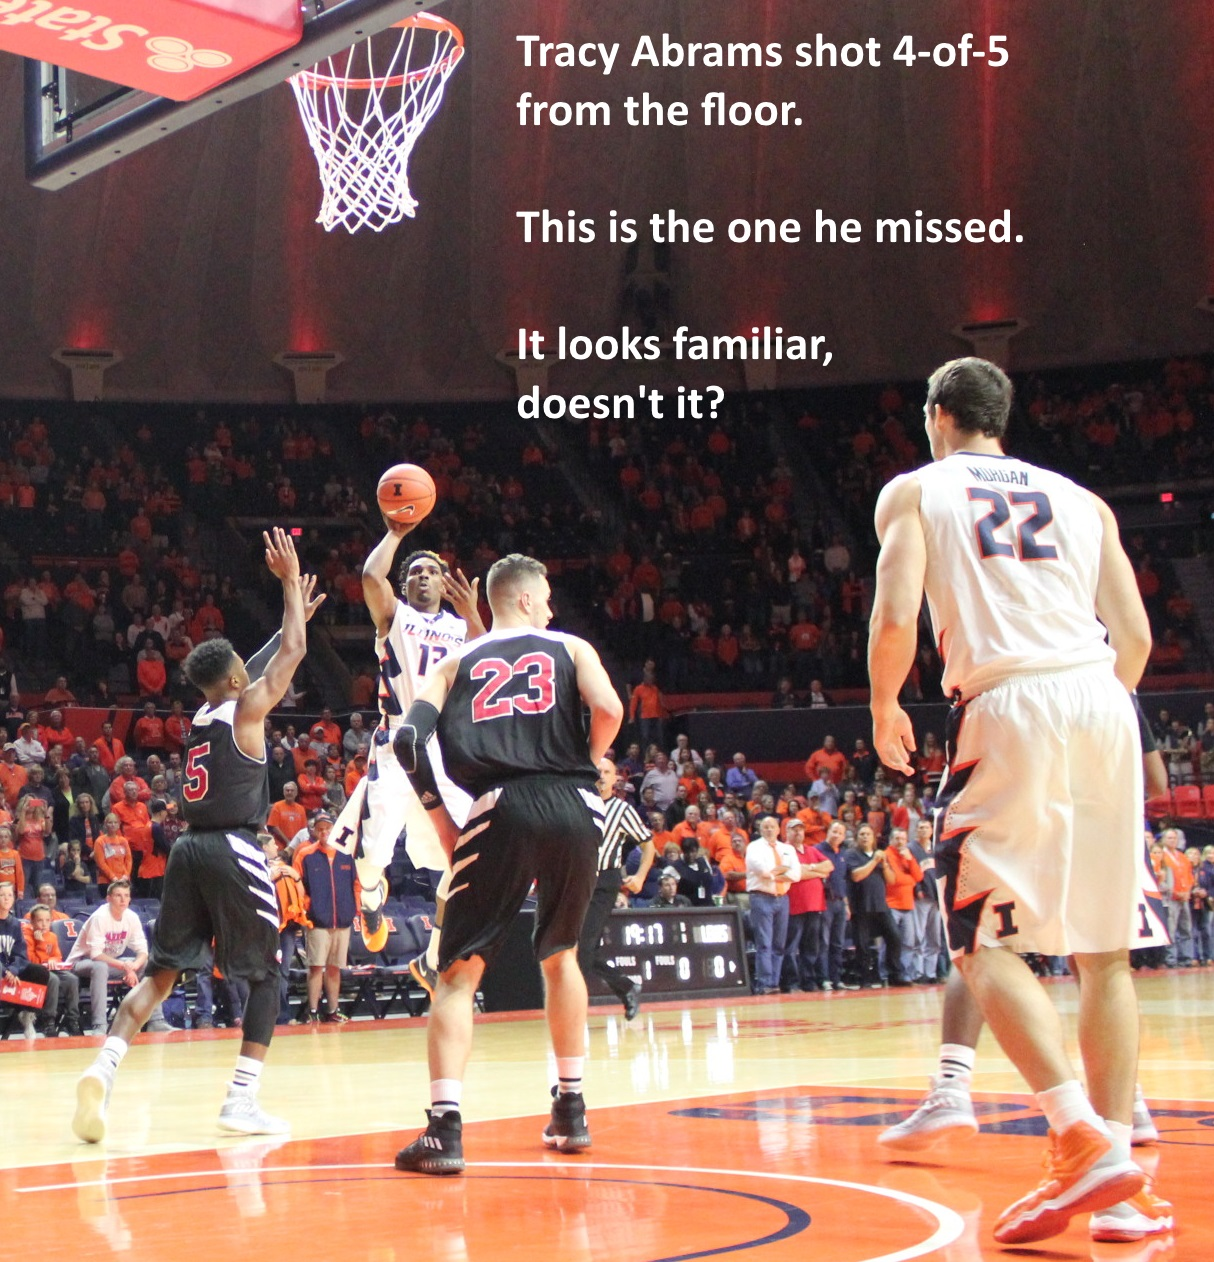 tracy-abrams-missed-this-shot-4-of-5